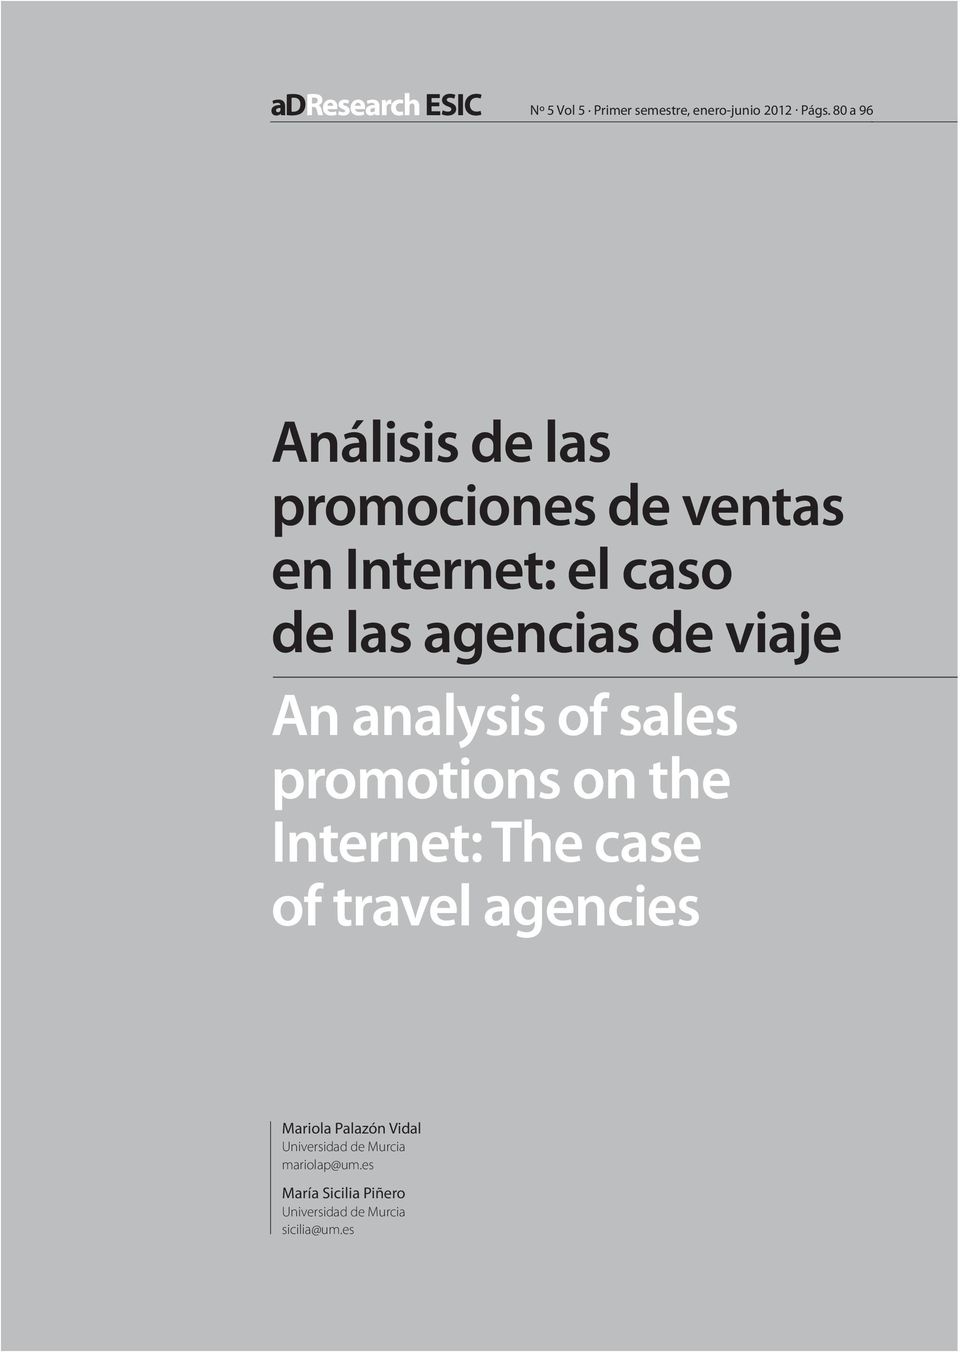 viaje An analysis of sales promotions on the Internet: The case of travel agencies